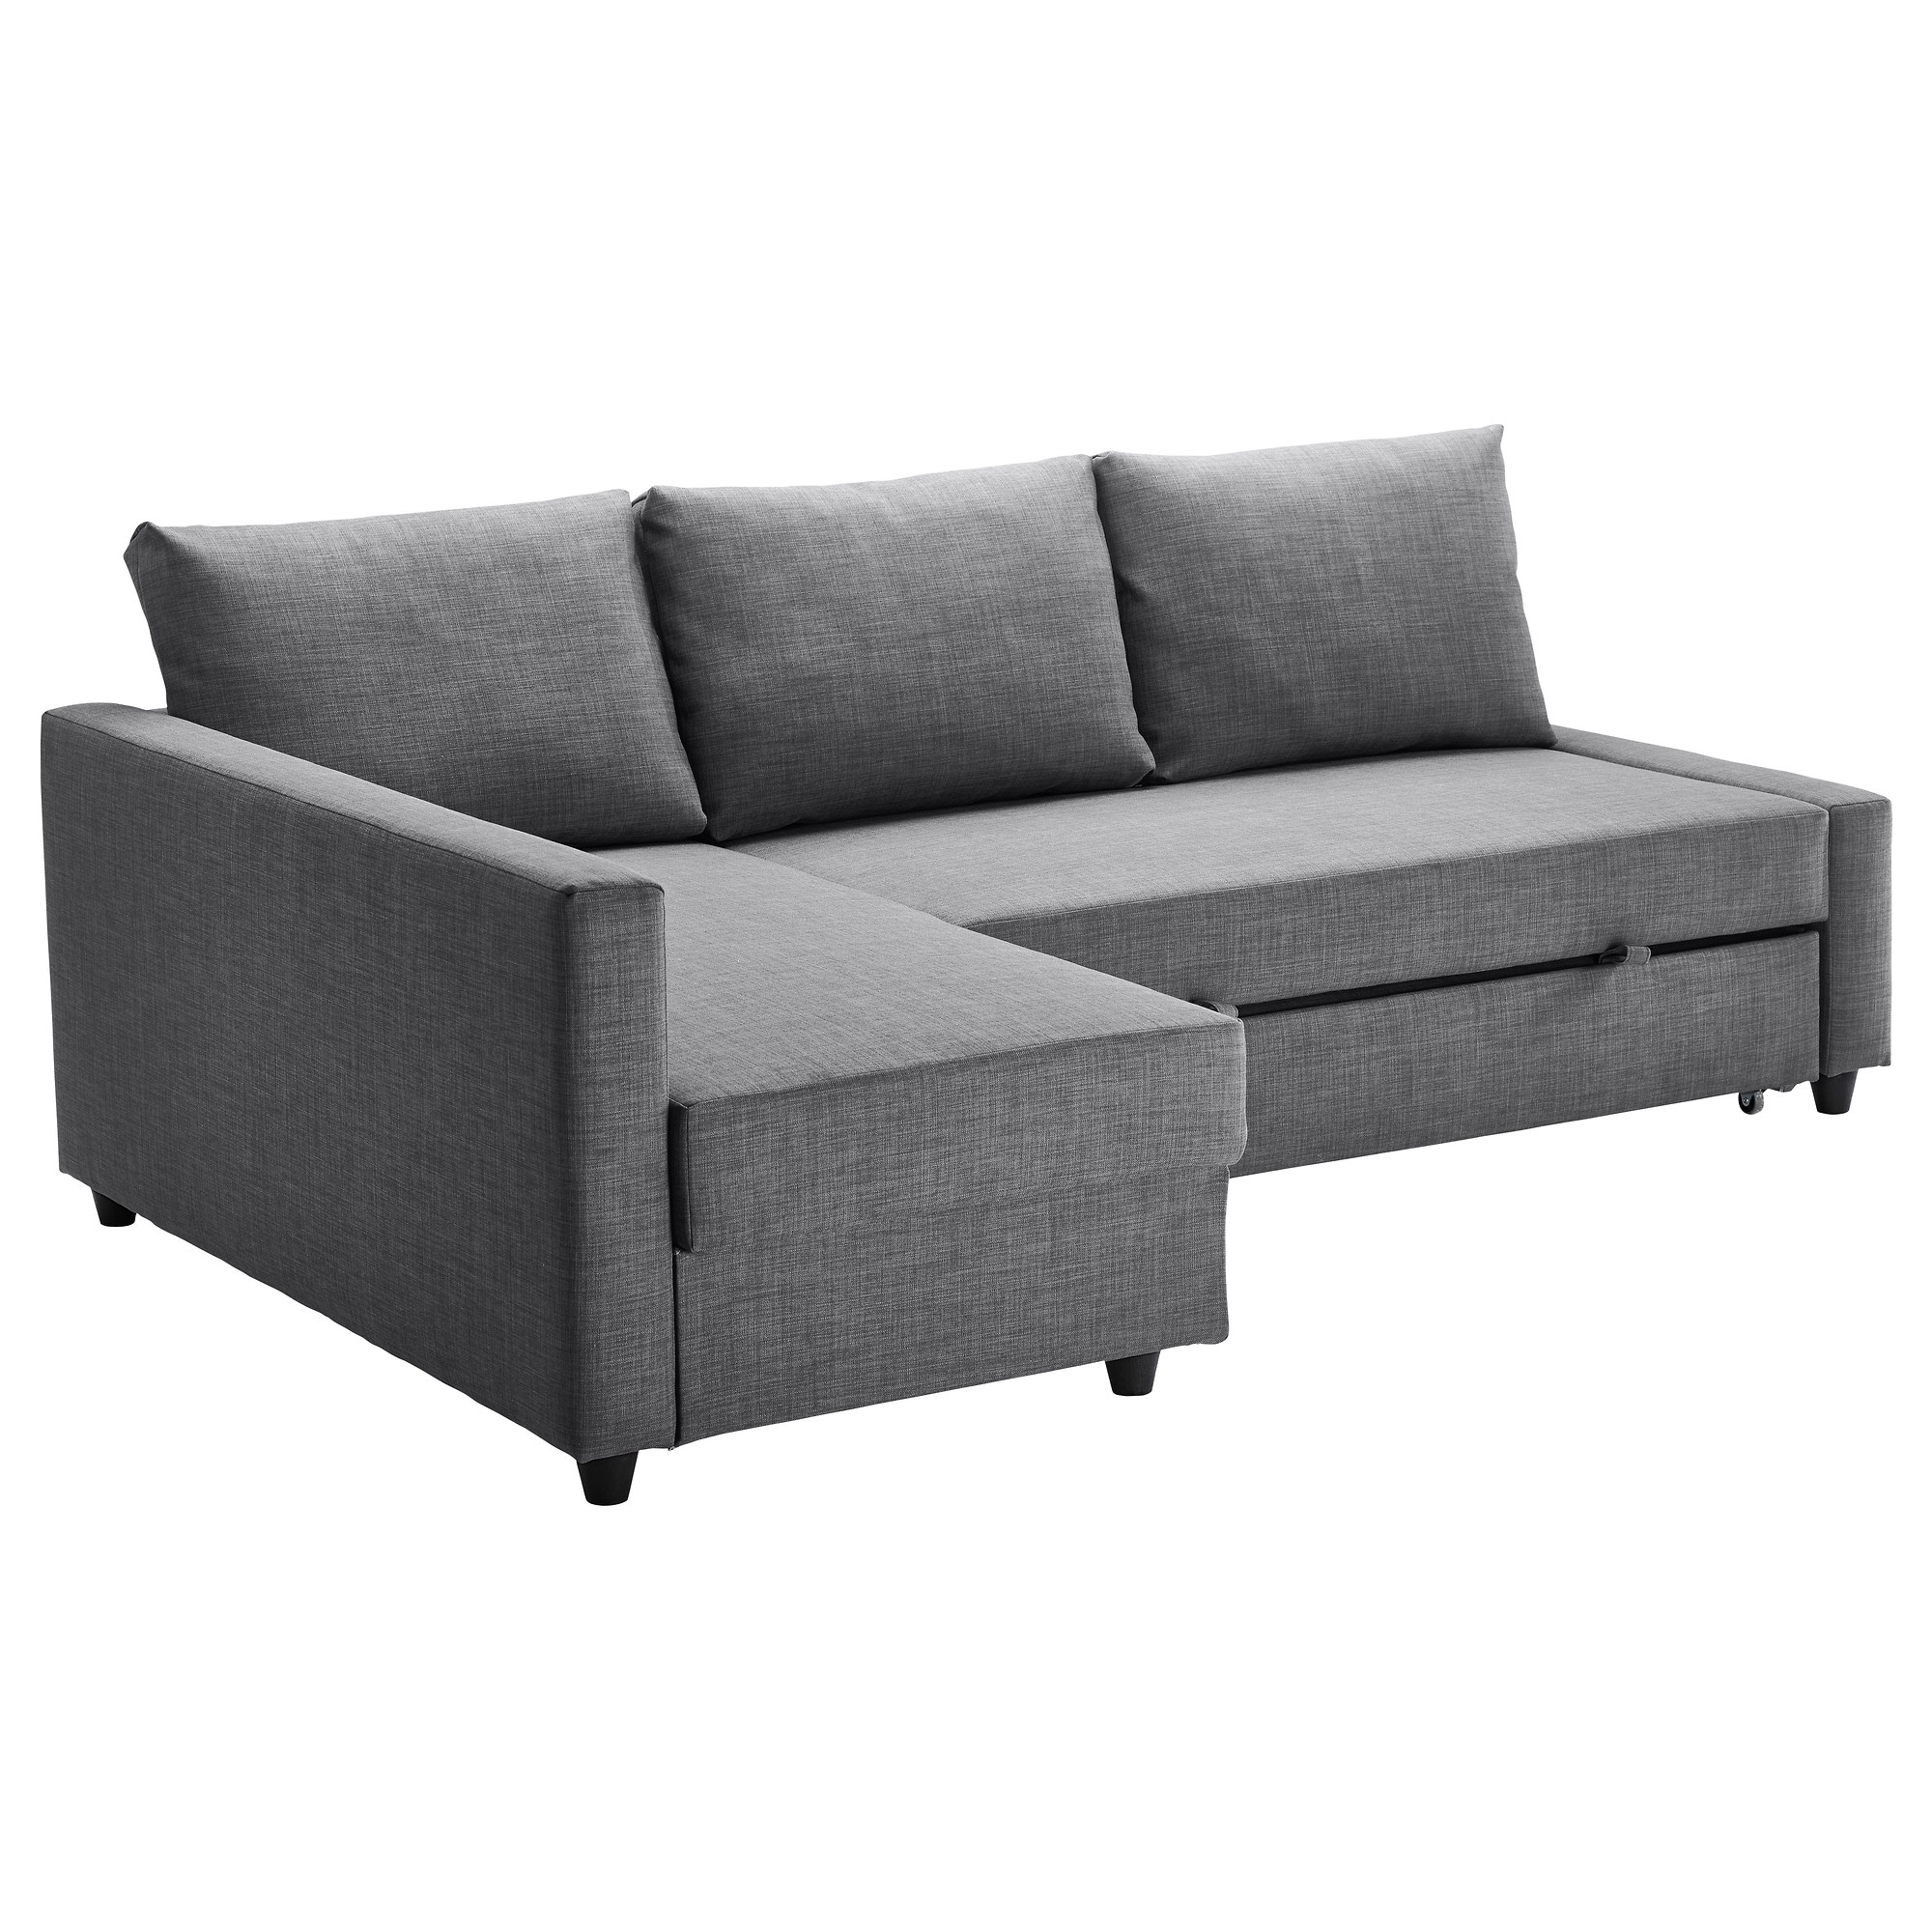 Preferred Chaise Sofa Chairs In Friheten Corner Sofa Bed With Storage Skiftebo Dark Grey – Ikea (View 18 of 20)